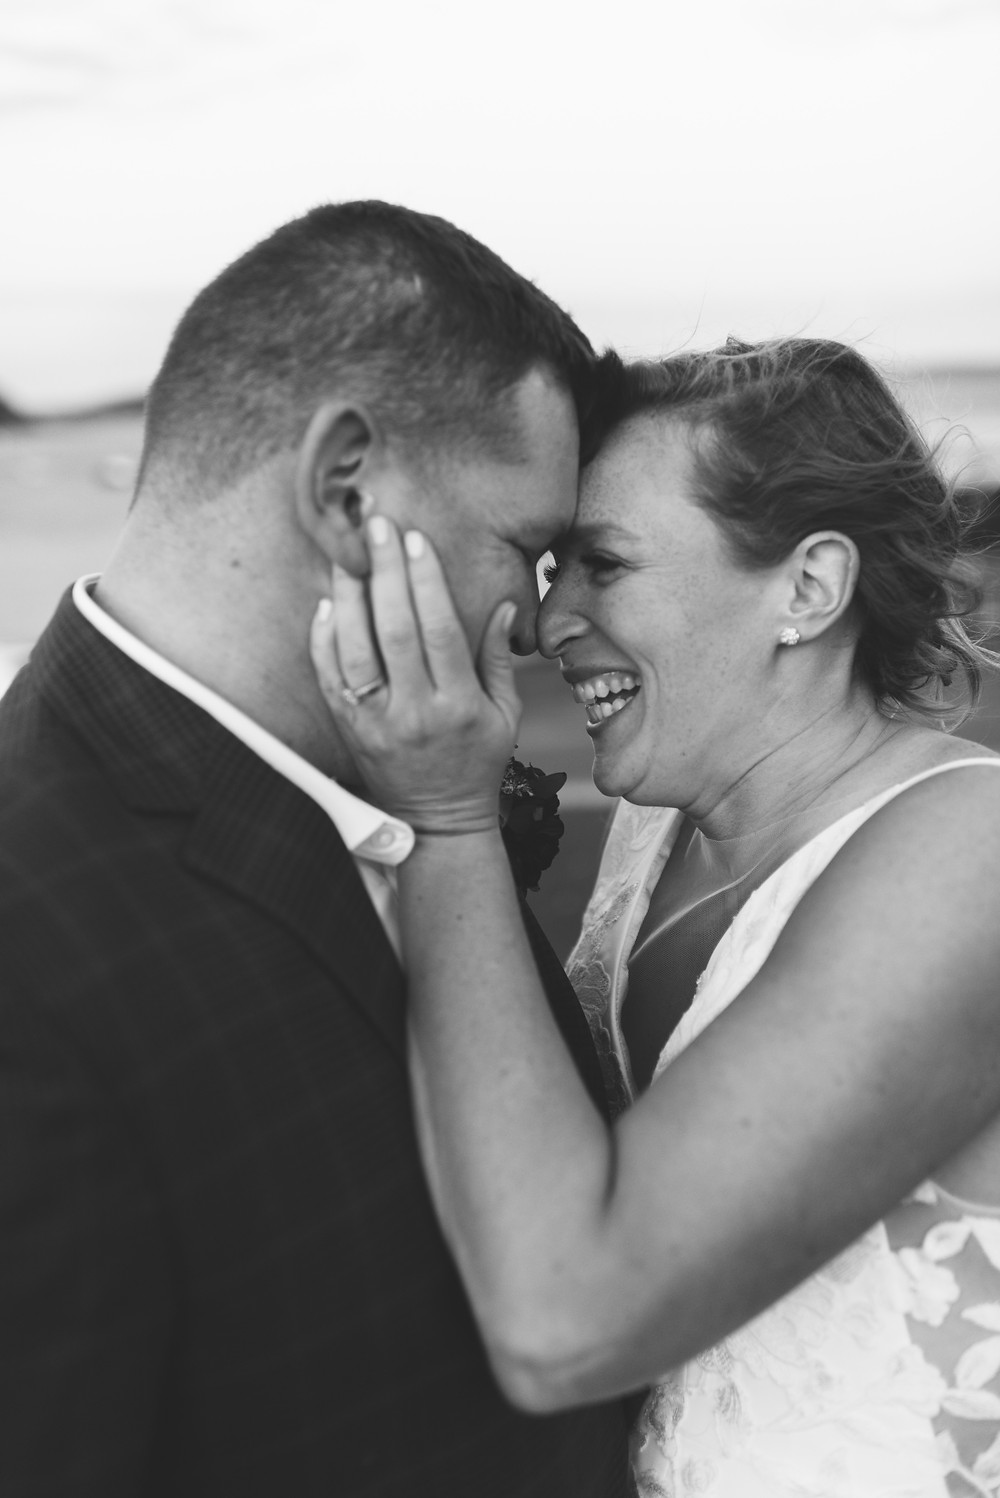 black and white photo close up of couple forehead to forehead with bride pulling groom's face in